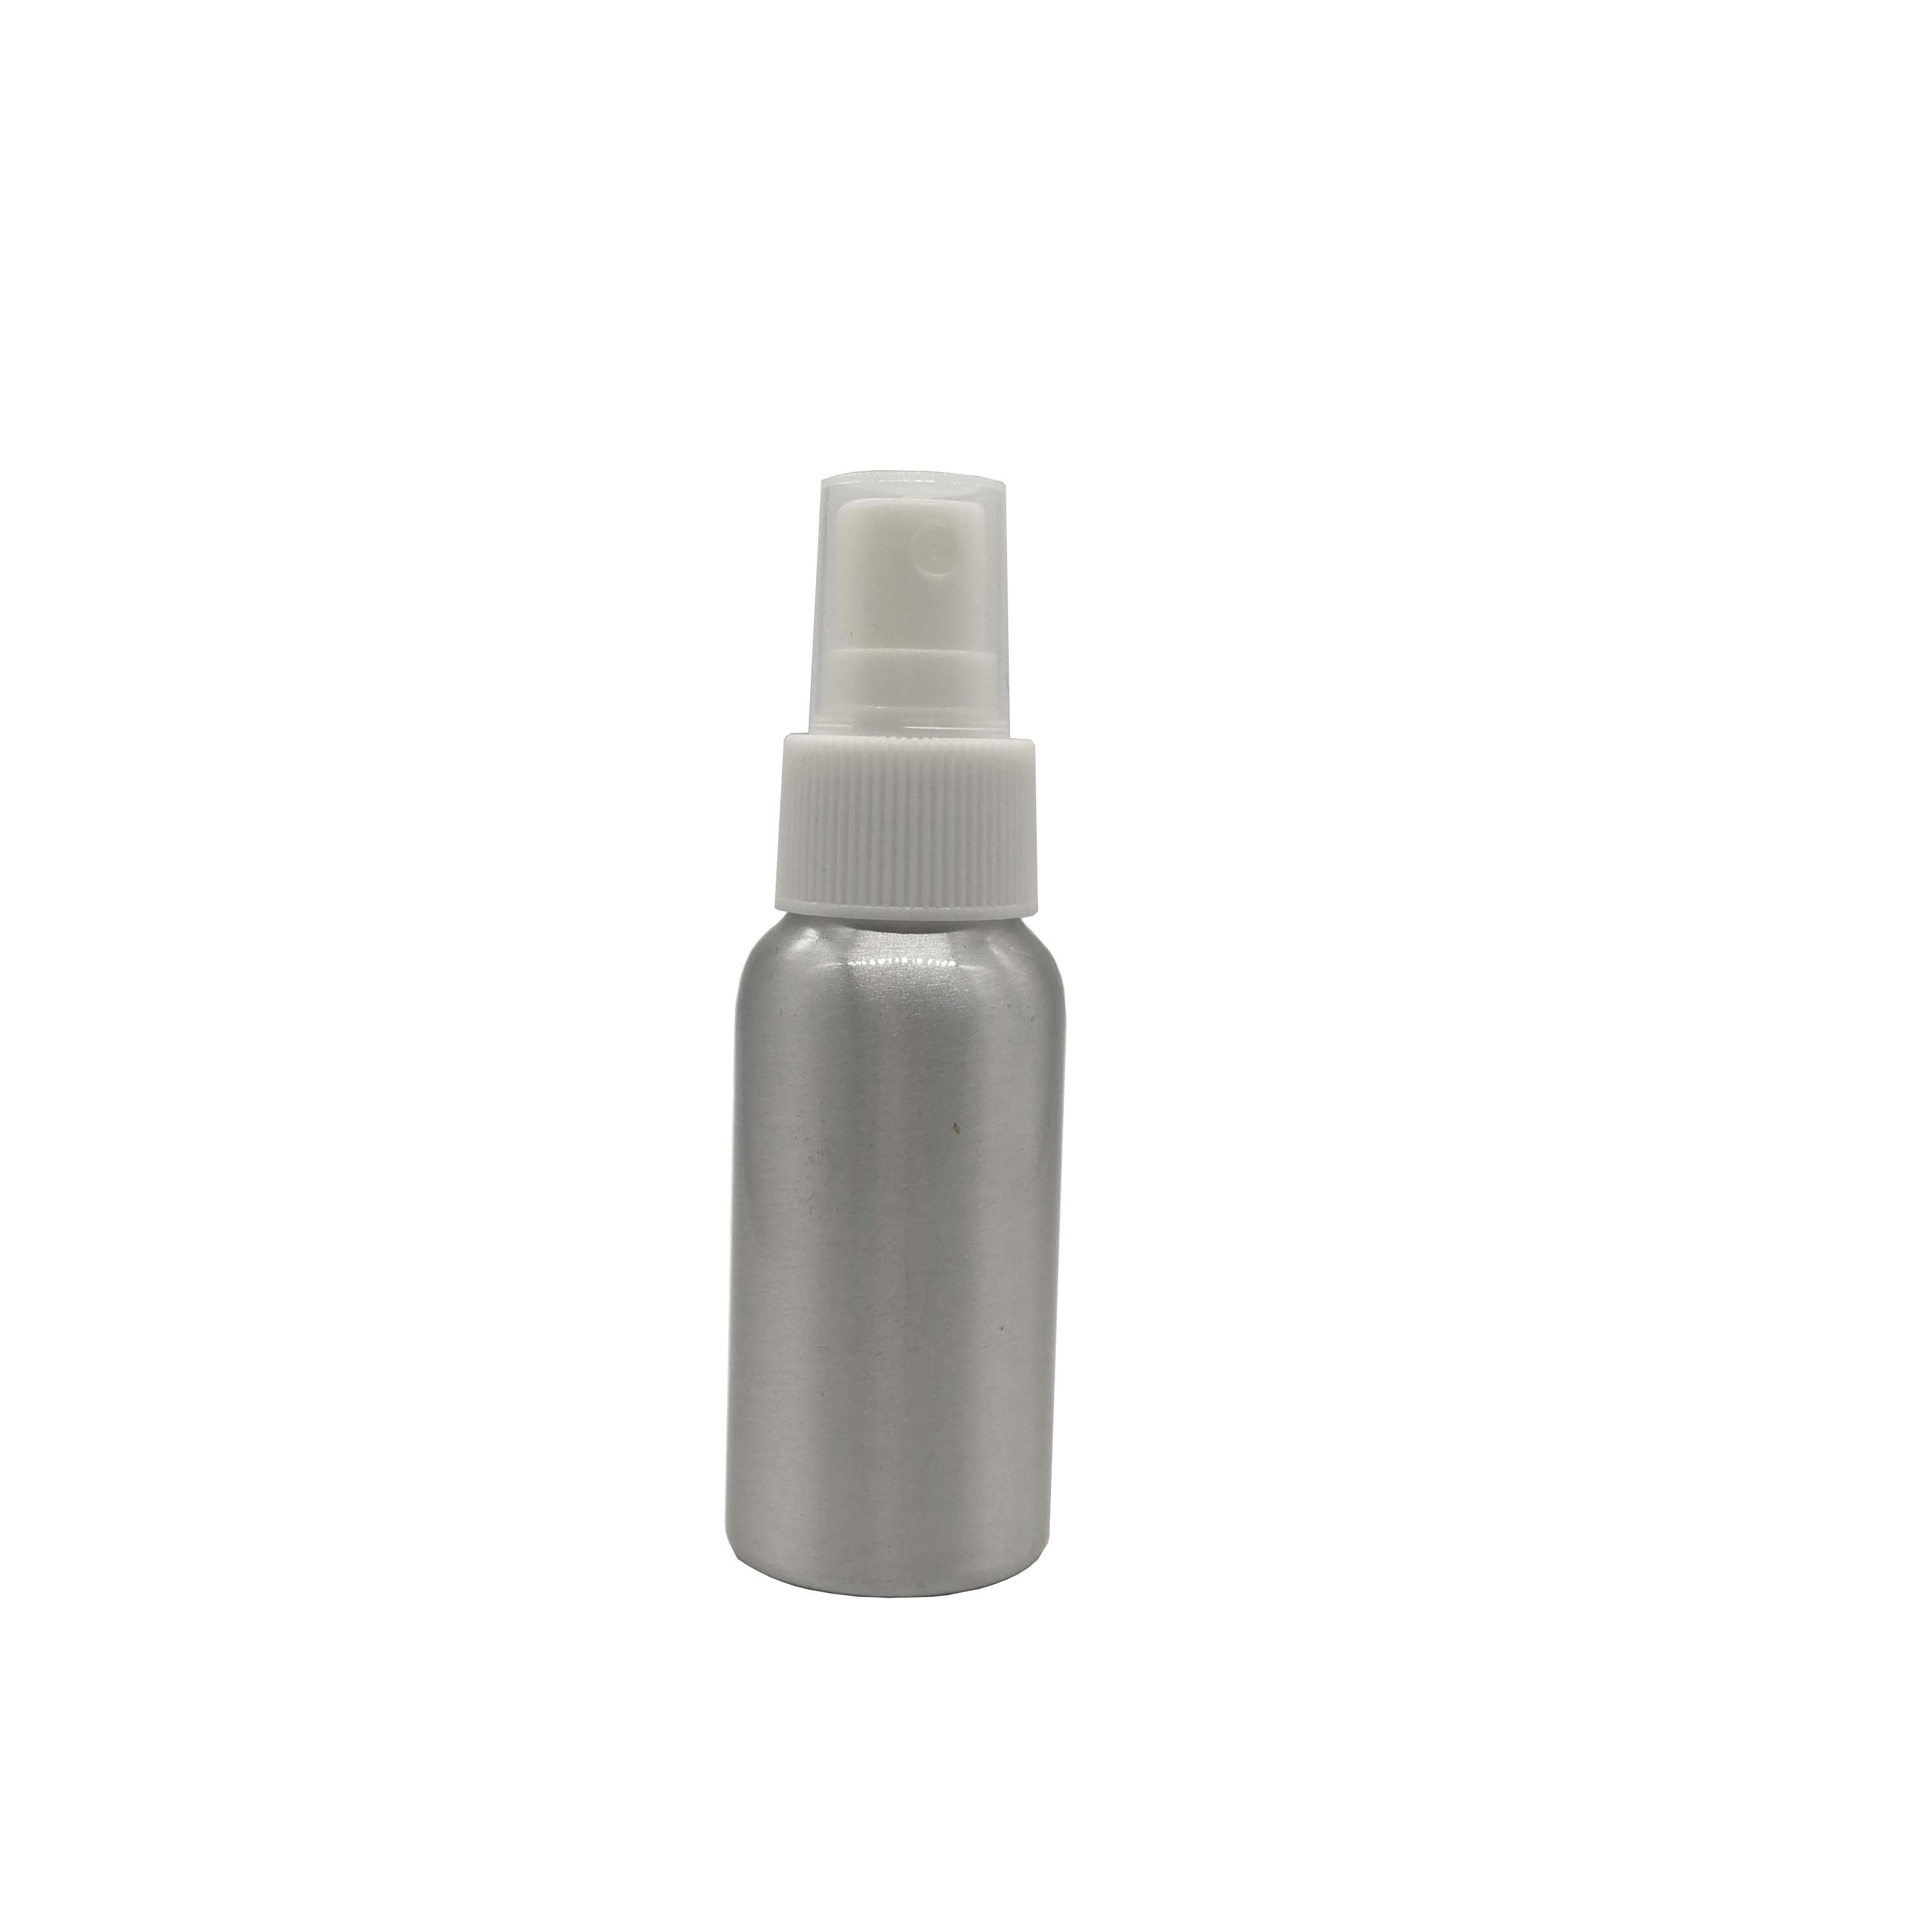 30/50/100/150/200/250/500ml silvery aluminum spray bottle shampoo bath lotion moisturizer screw cap with lid